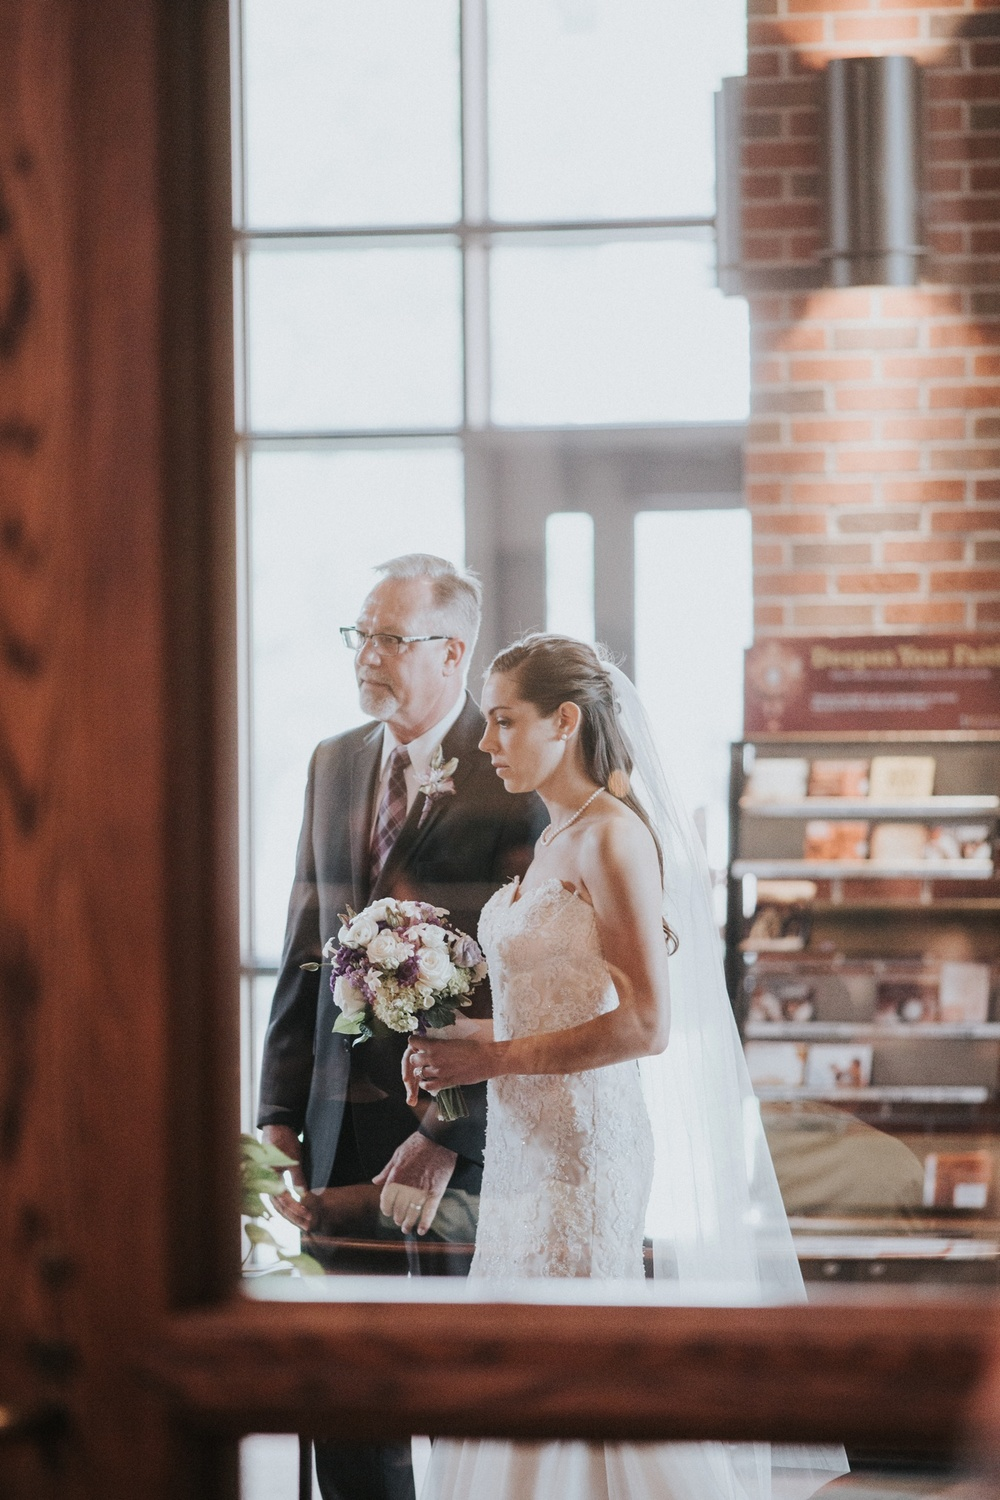 morgan+john_wedding-364_WEB.jpg